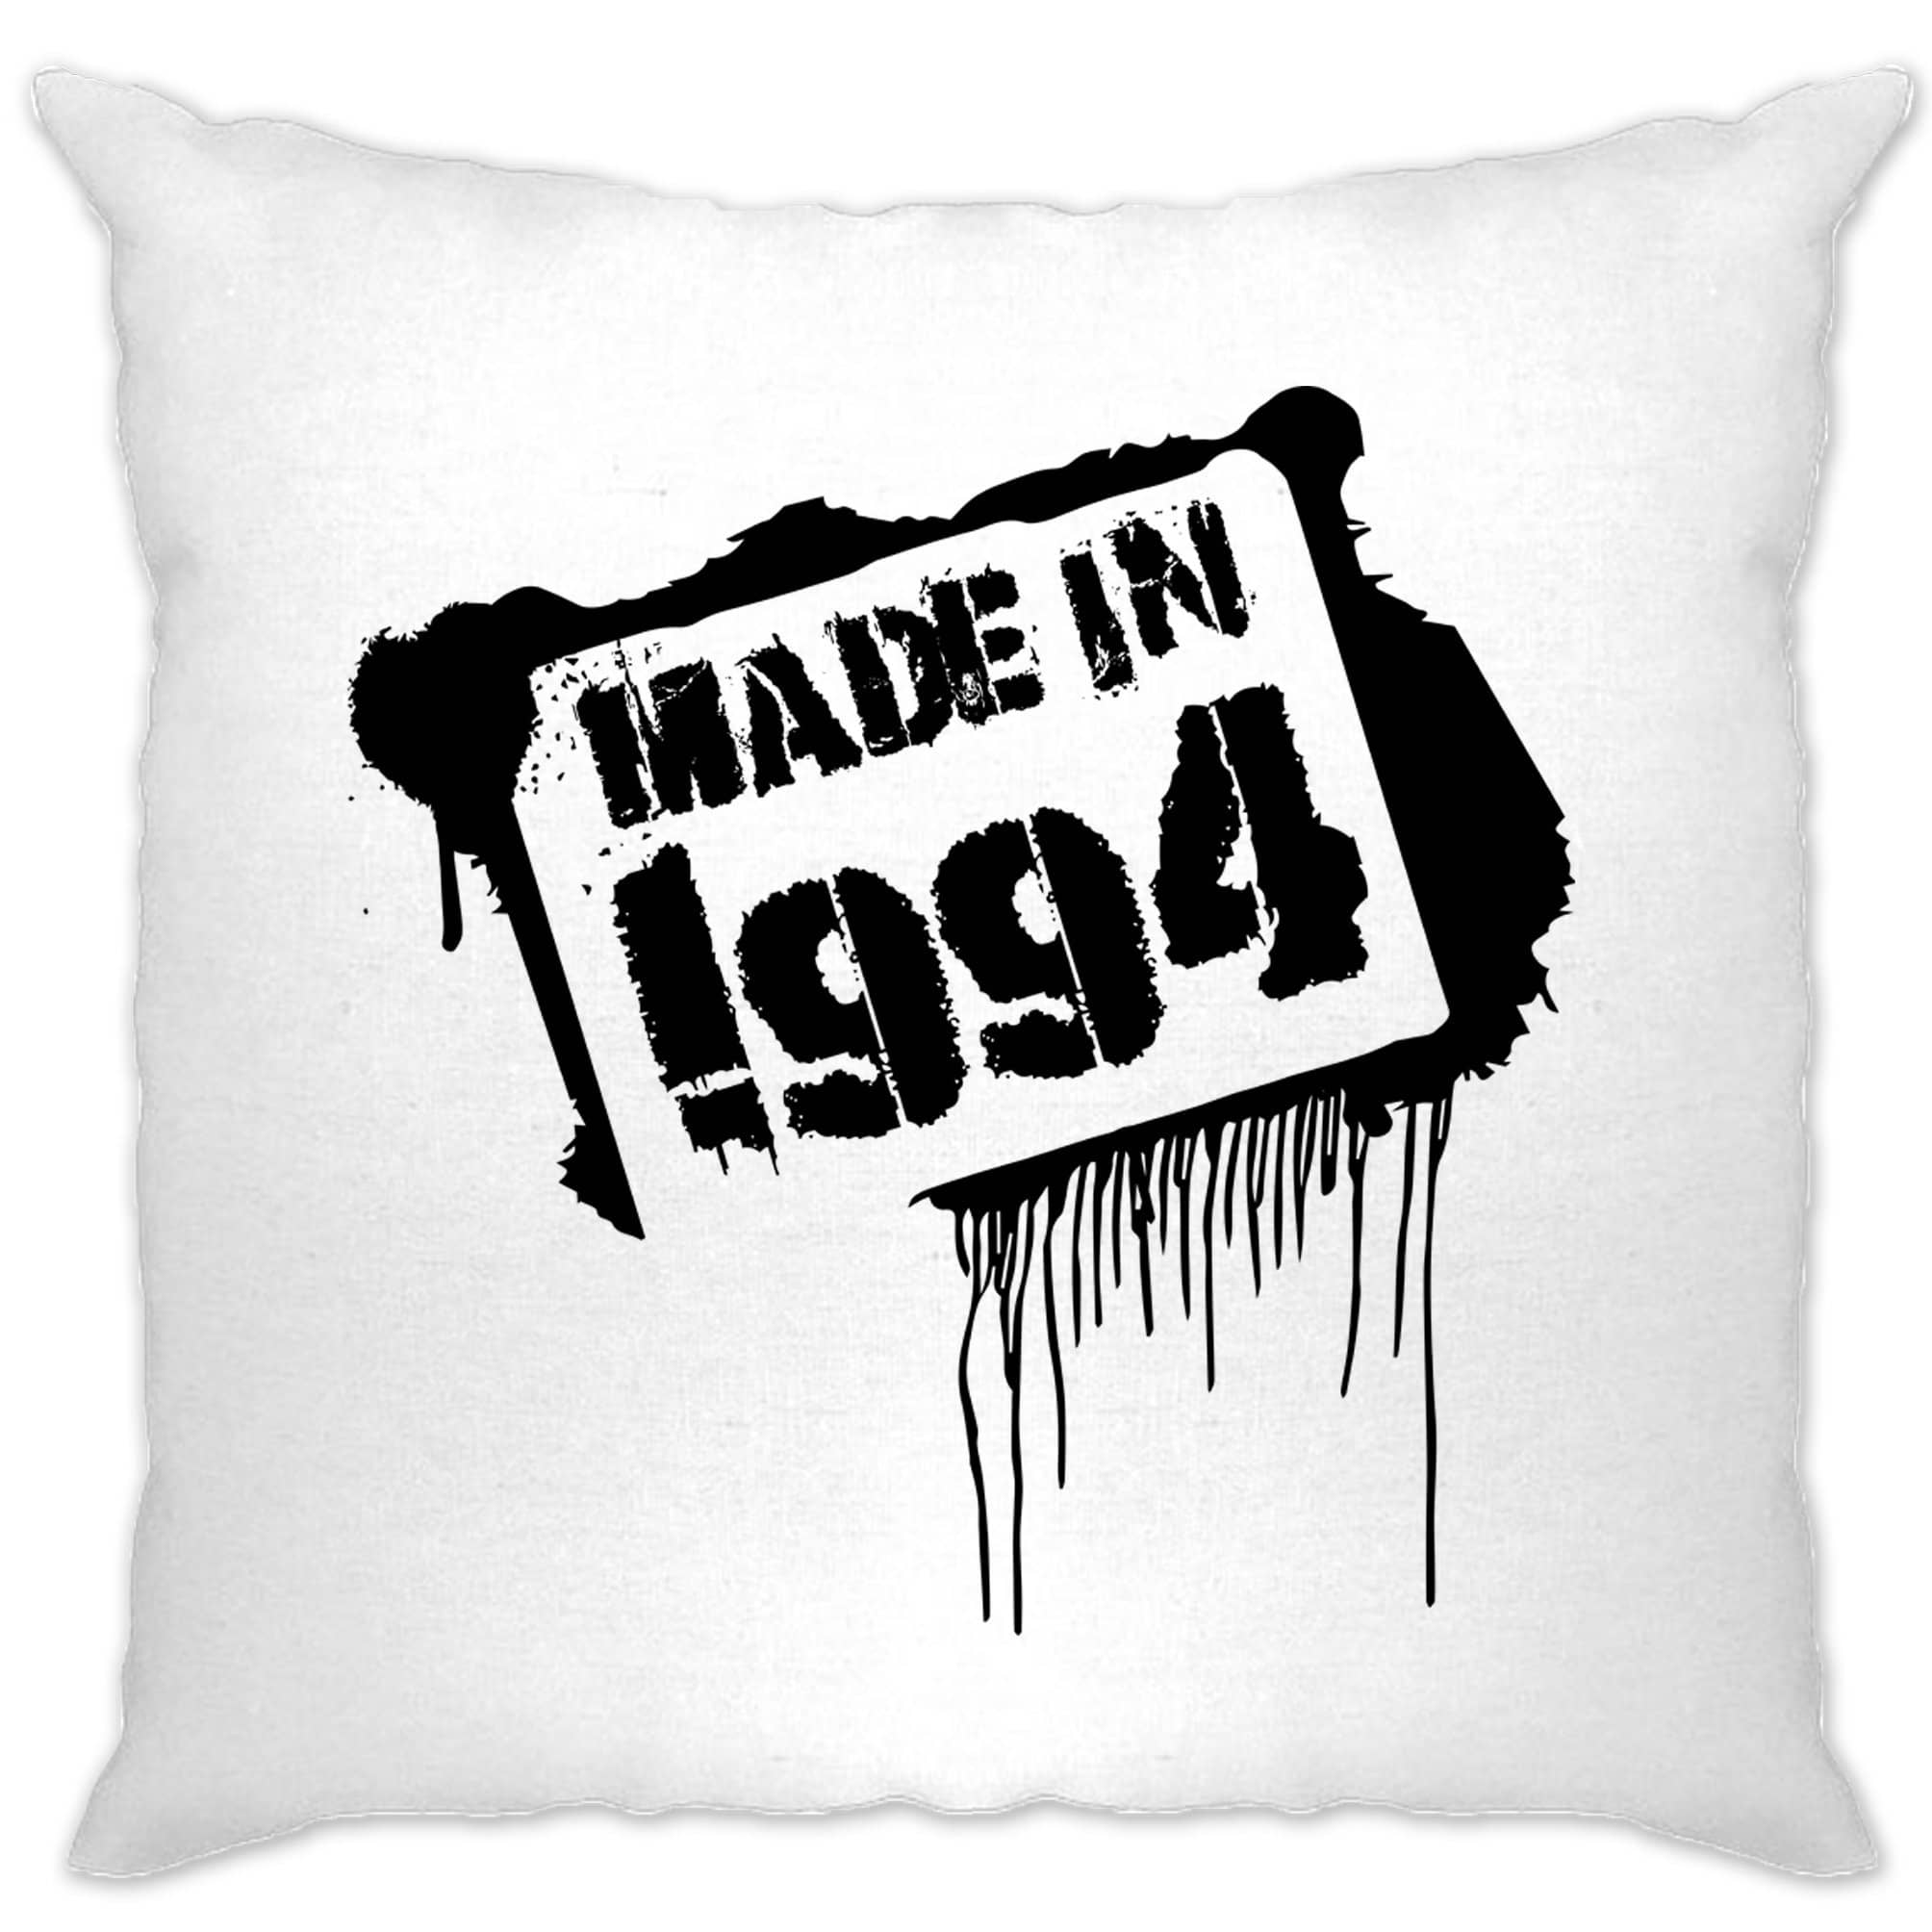 Birthday Cushion Cover Made In 1994 Graffiti